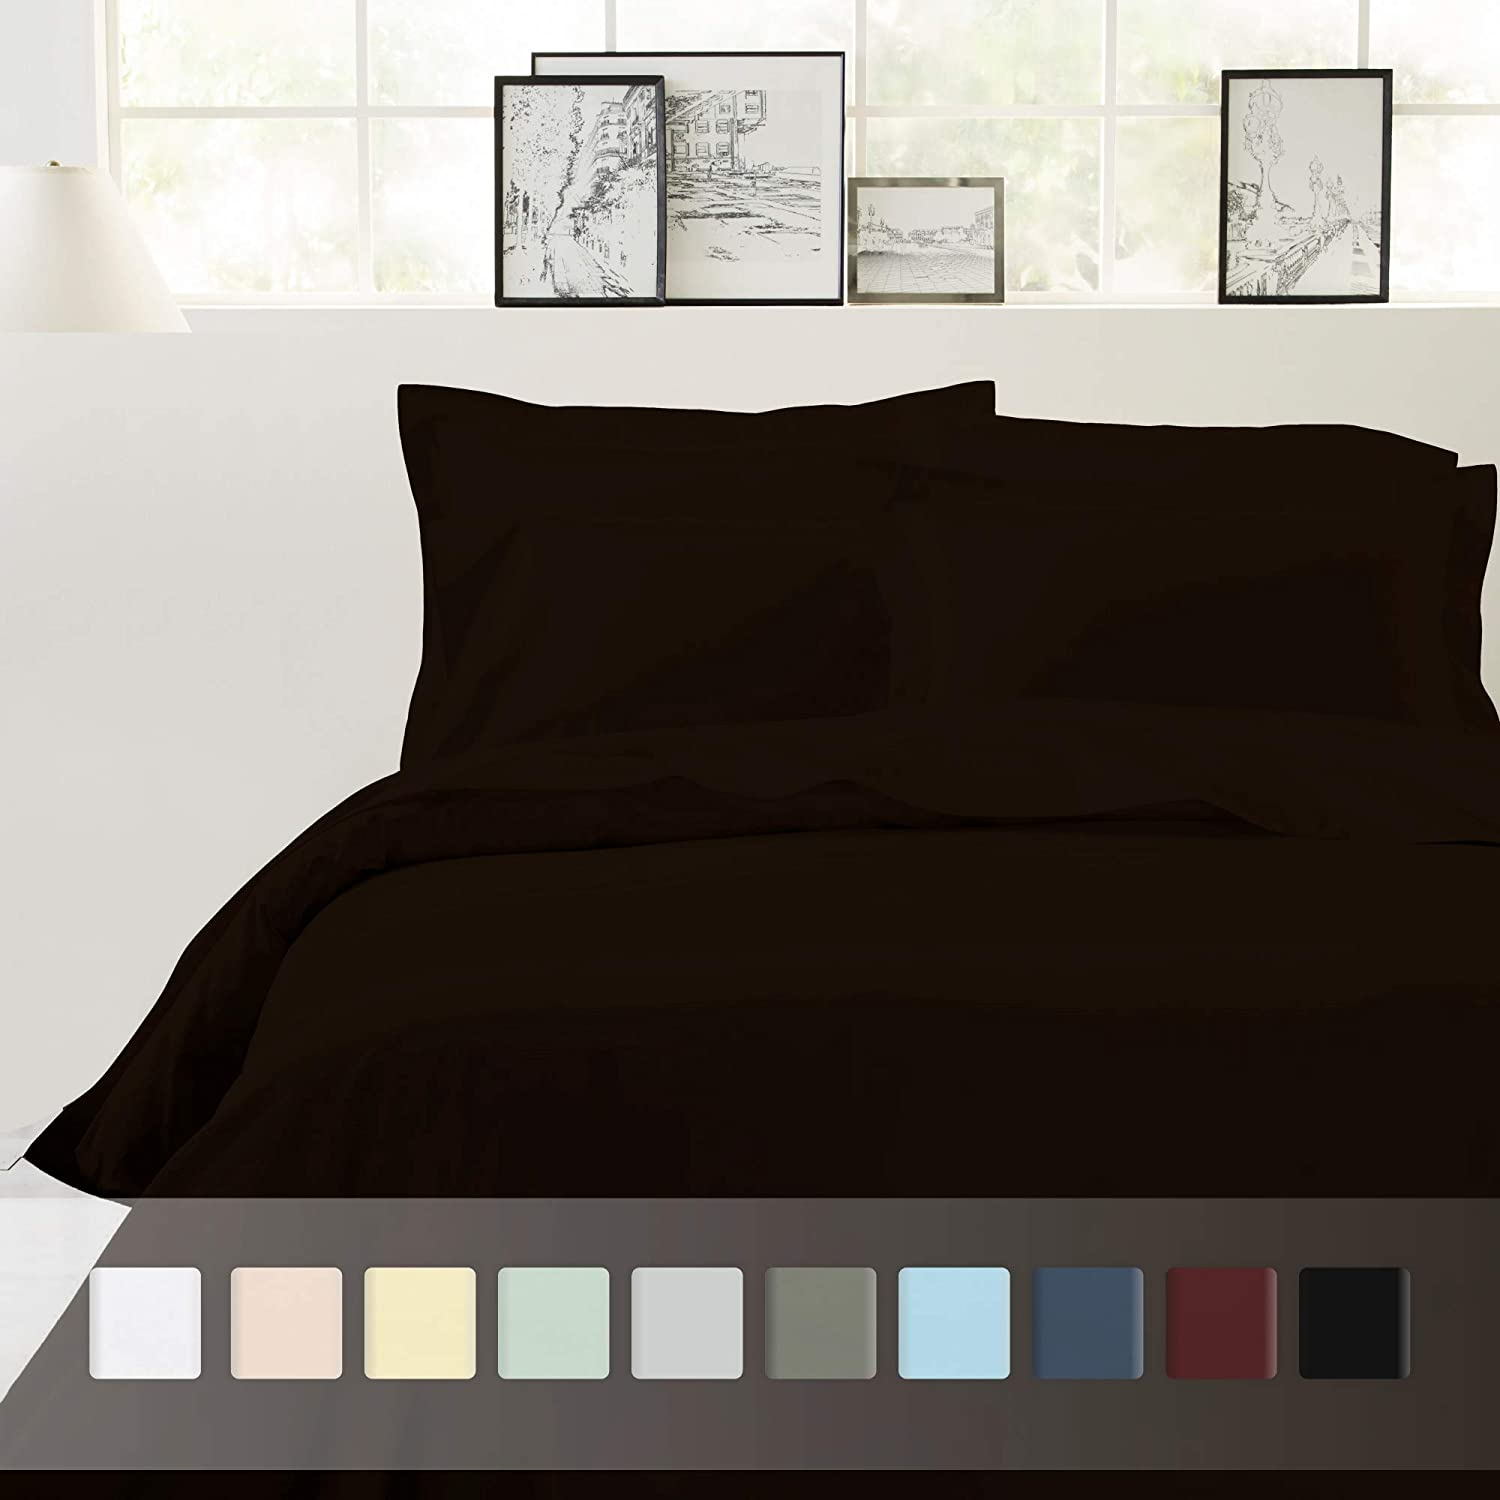 Chocolate Brown Full Queen  Duvet Cover Set 400 TC 100% Cotton Sheet Snowflakes Grey Full Size Printed Sheet Set, 4 Pc Longstaple Combed Cotton Bedding Sheets For Bed, Breathable, Soft Sateen Weave Fits Mattress Upto 18'' Deep Pocket